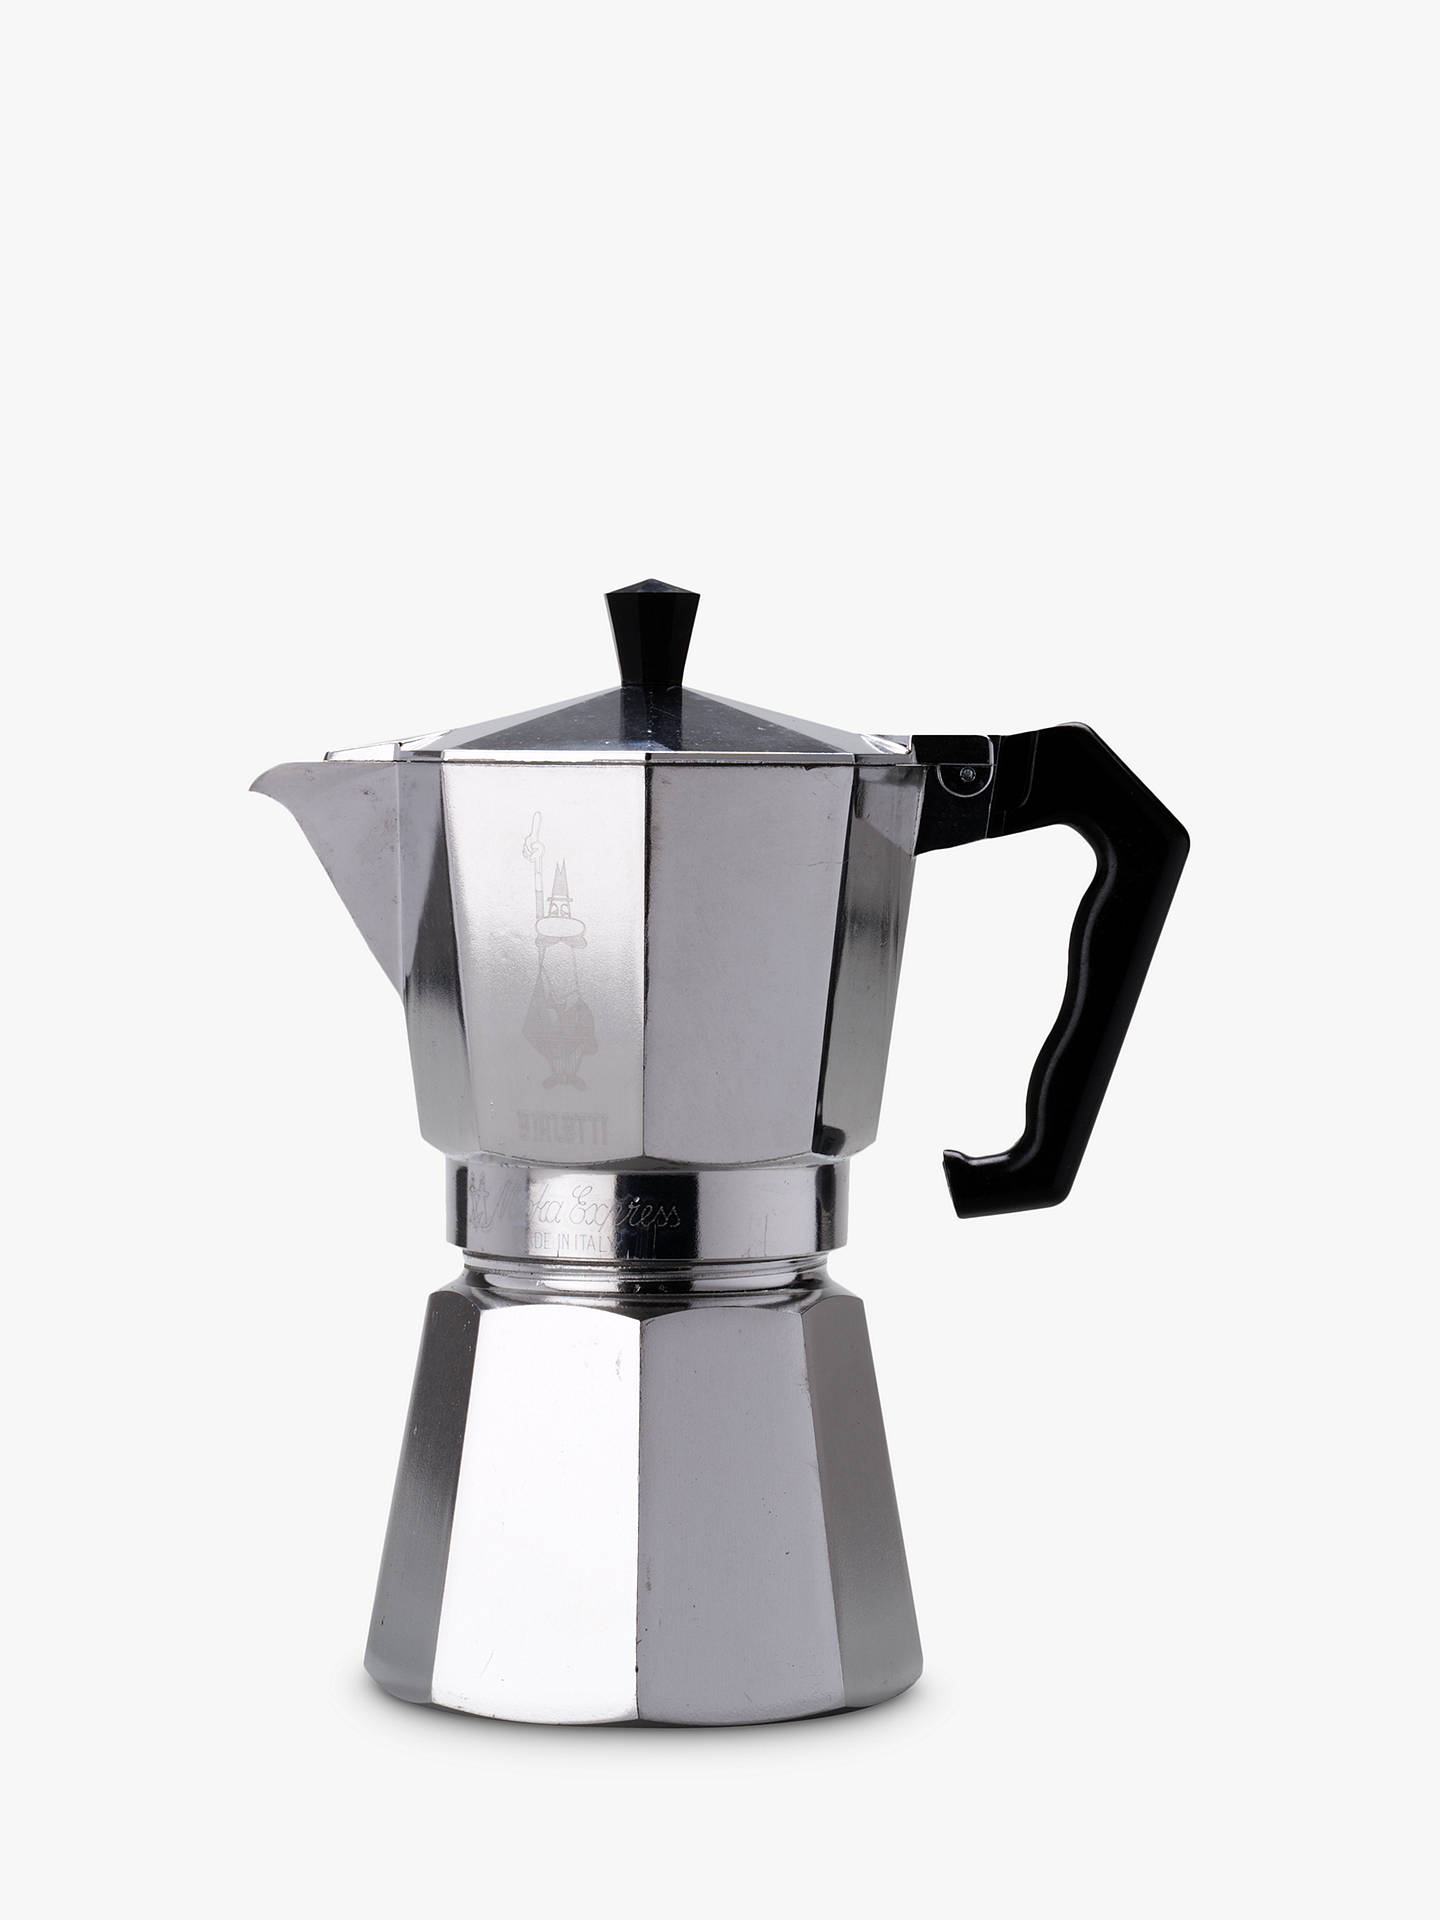 BuyBialetti Moka Express Hob Espresso Maker, 1 Cup Online at johnlewis.com